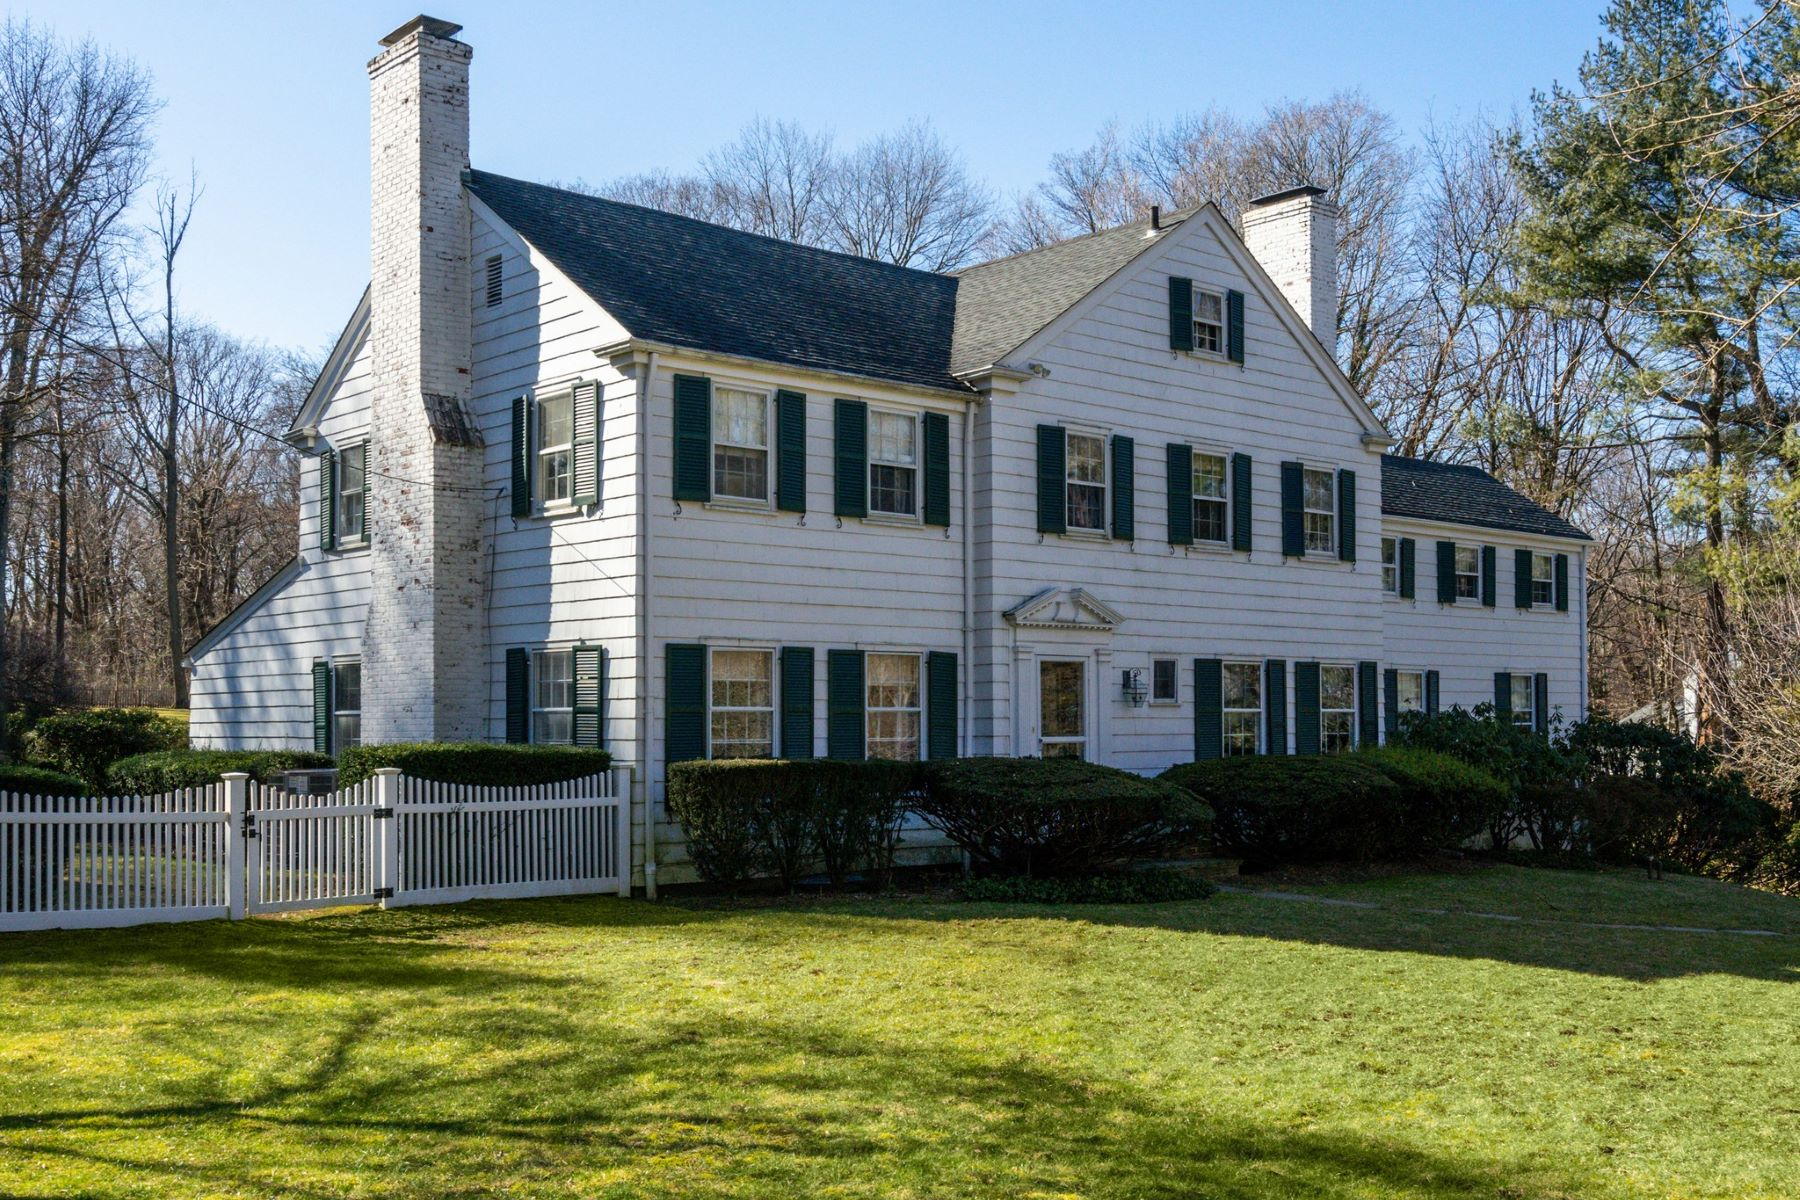 Single Family Homes for Sale at Locust Valley 15 The Glen Locust Valley, New York 11560 United States